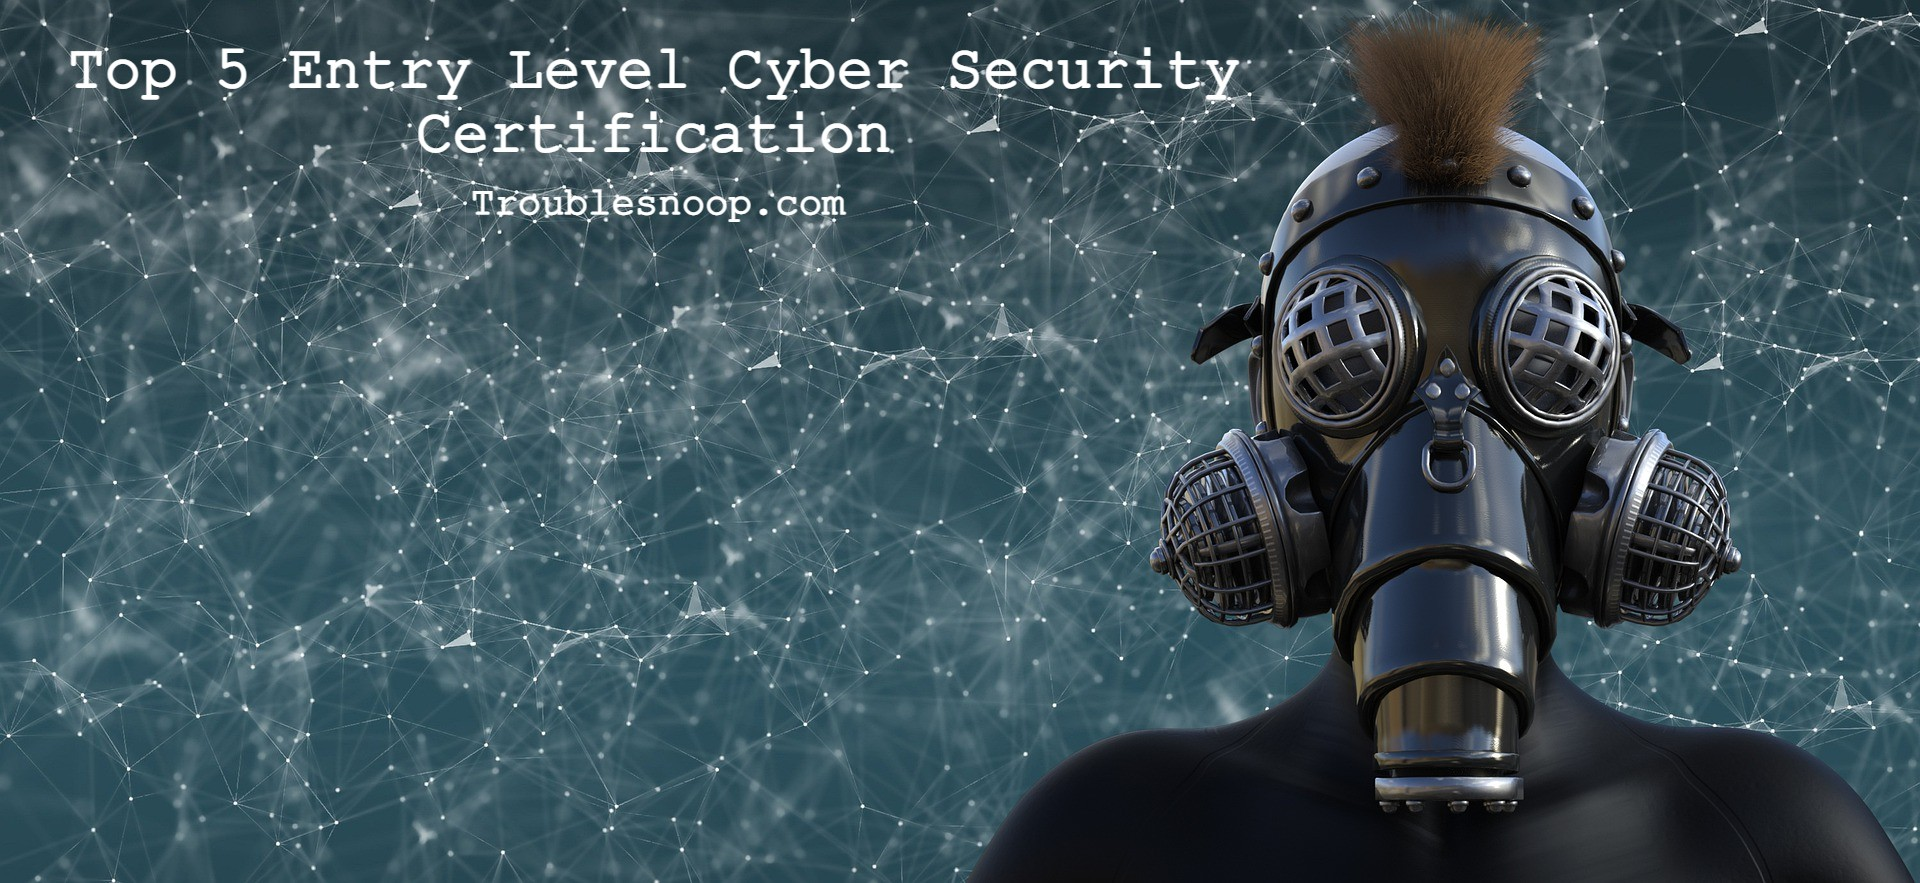 Top 5 Entry Level Cyber Security Certification